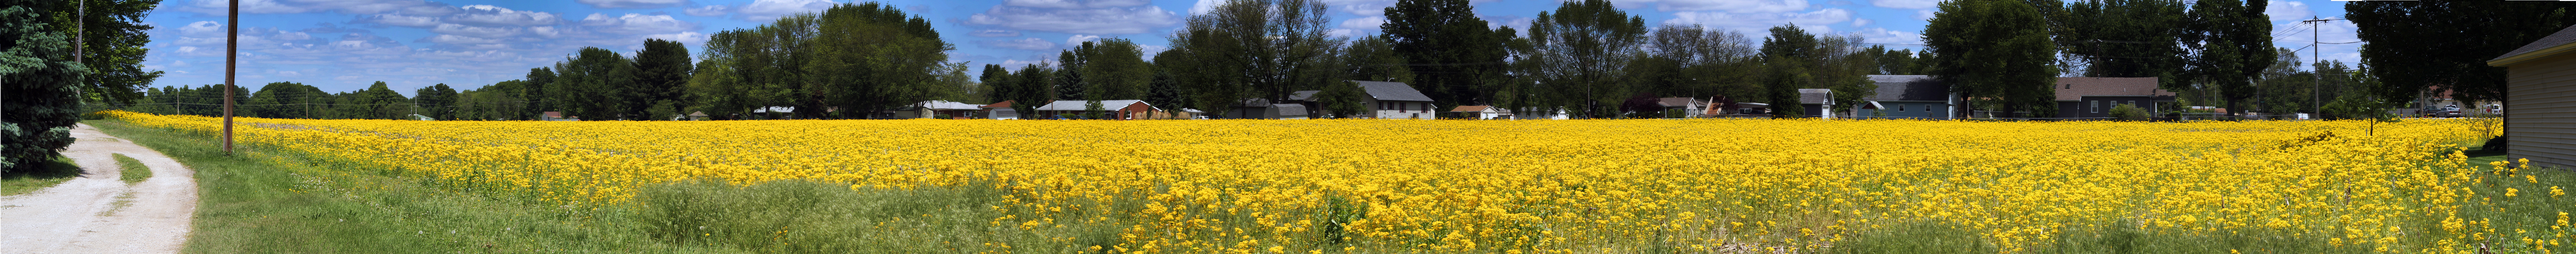 """""""Field of Yellow"""" - 14 image panorama taken on Sunday, May 9, 2010 from the parking lot of the Rock Church of the Wabash Valley, Terre Haute, Indiana (8930 U.S. 40 Terre Haute, IN 47803) facing northeast."""